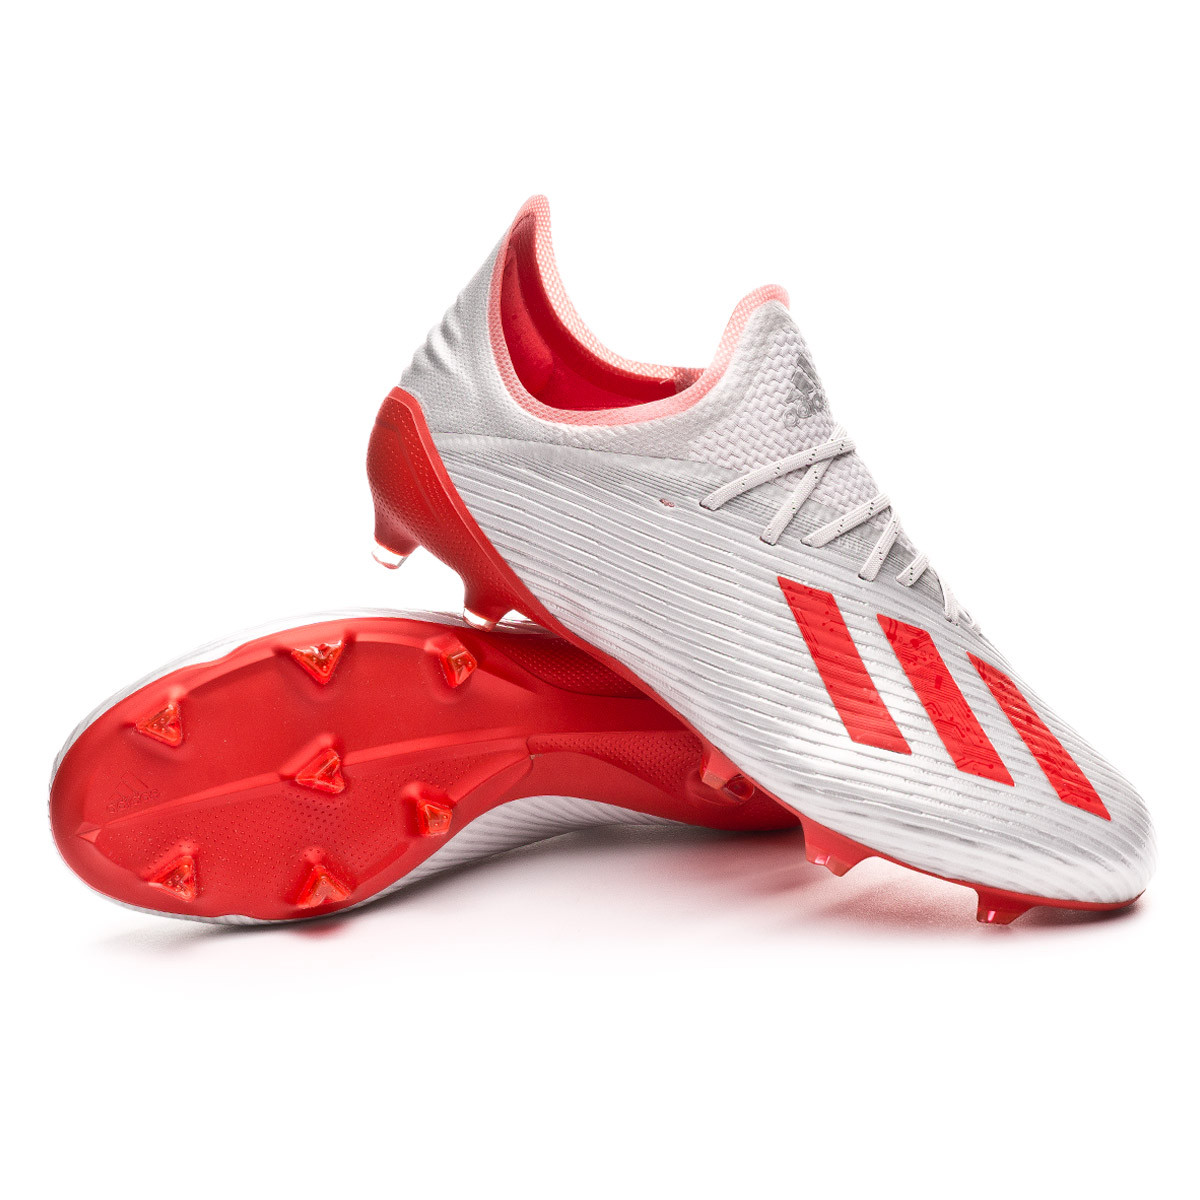 mecanismo porcelana clima  Football Boots adidas X 19.1 FG Silver metallic-Hi red-White - Football  store Fútbol Emotion